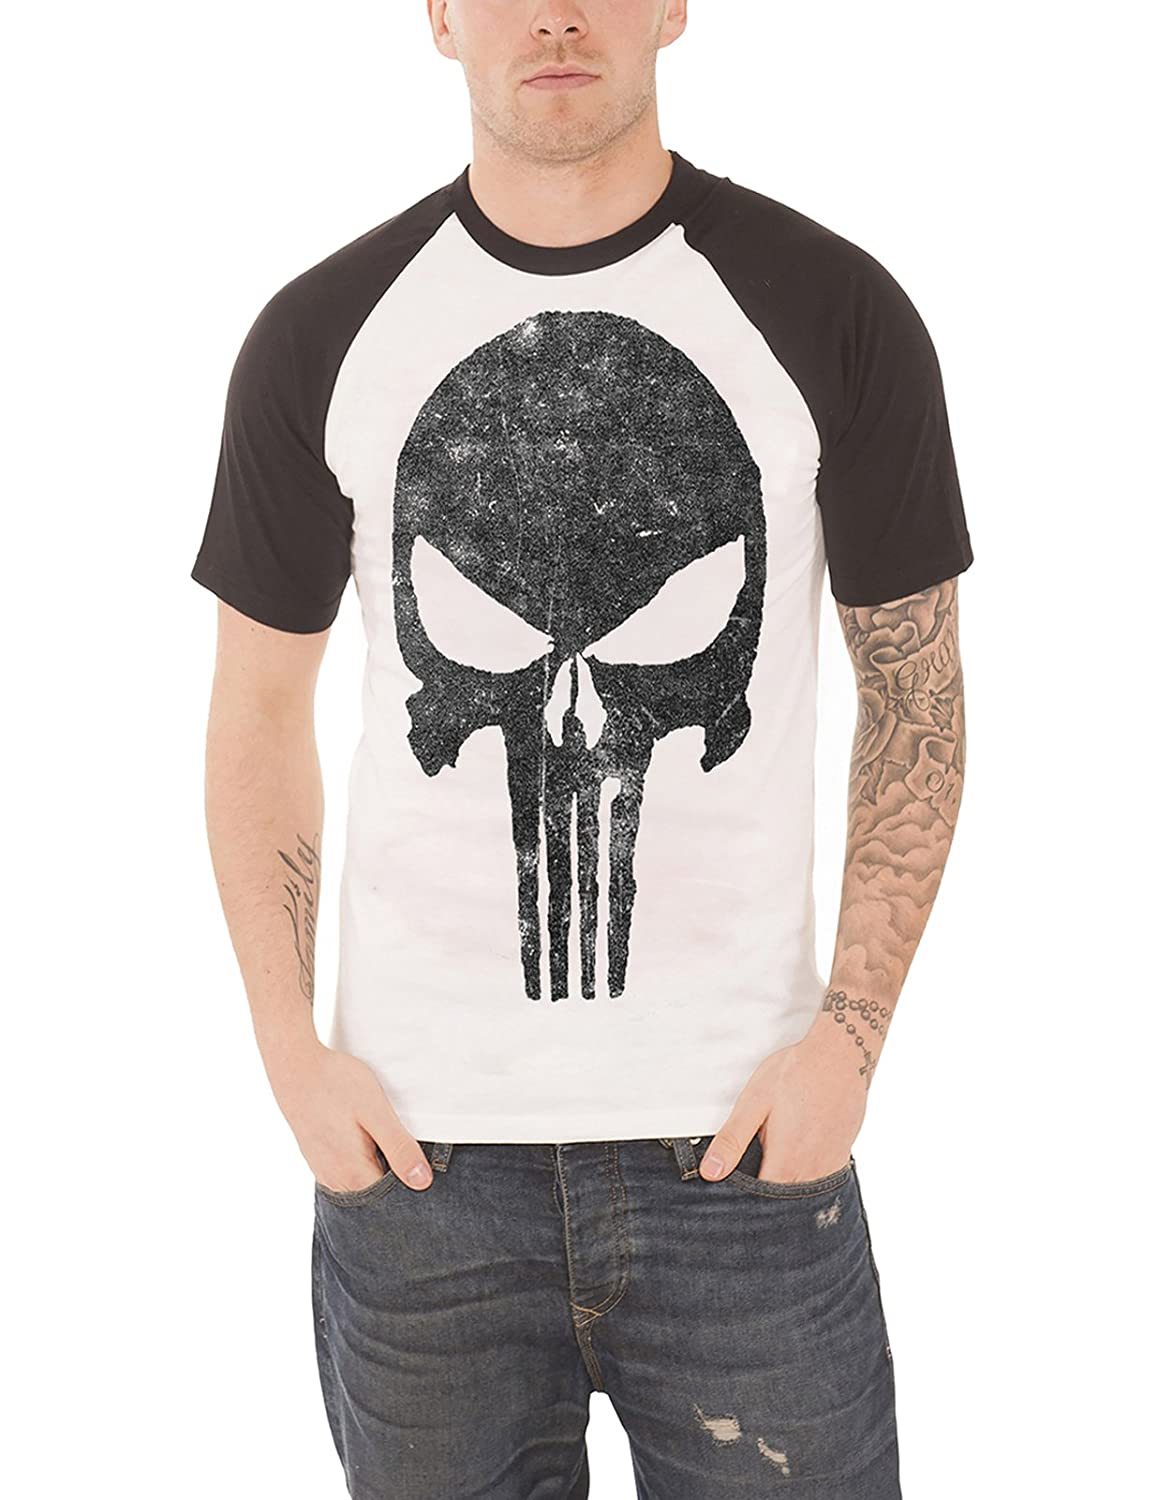 Punisher Jagged Skull Short Sleeve Raglan Black